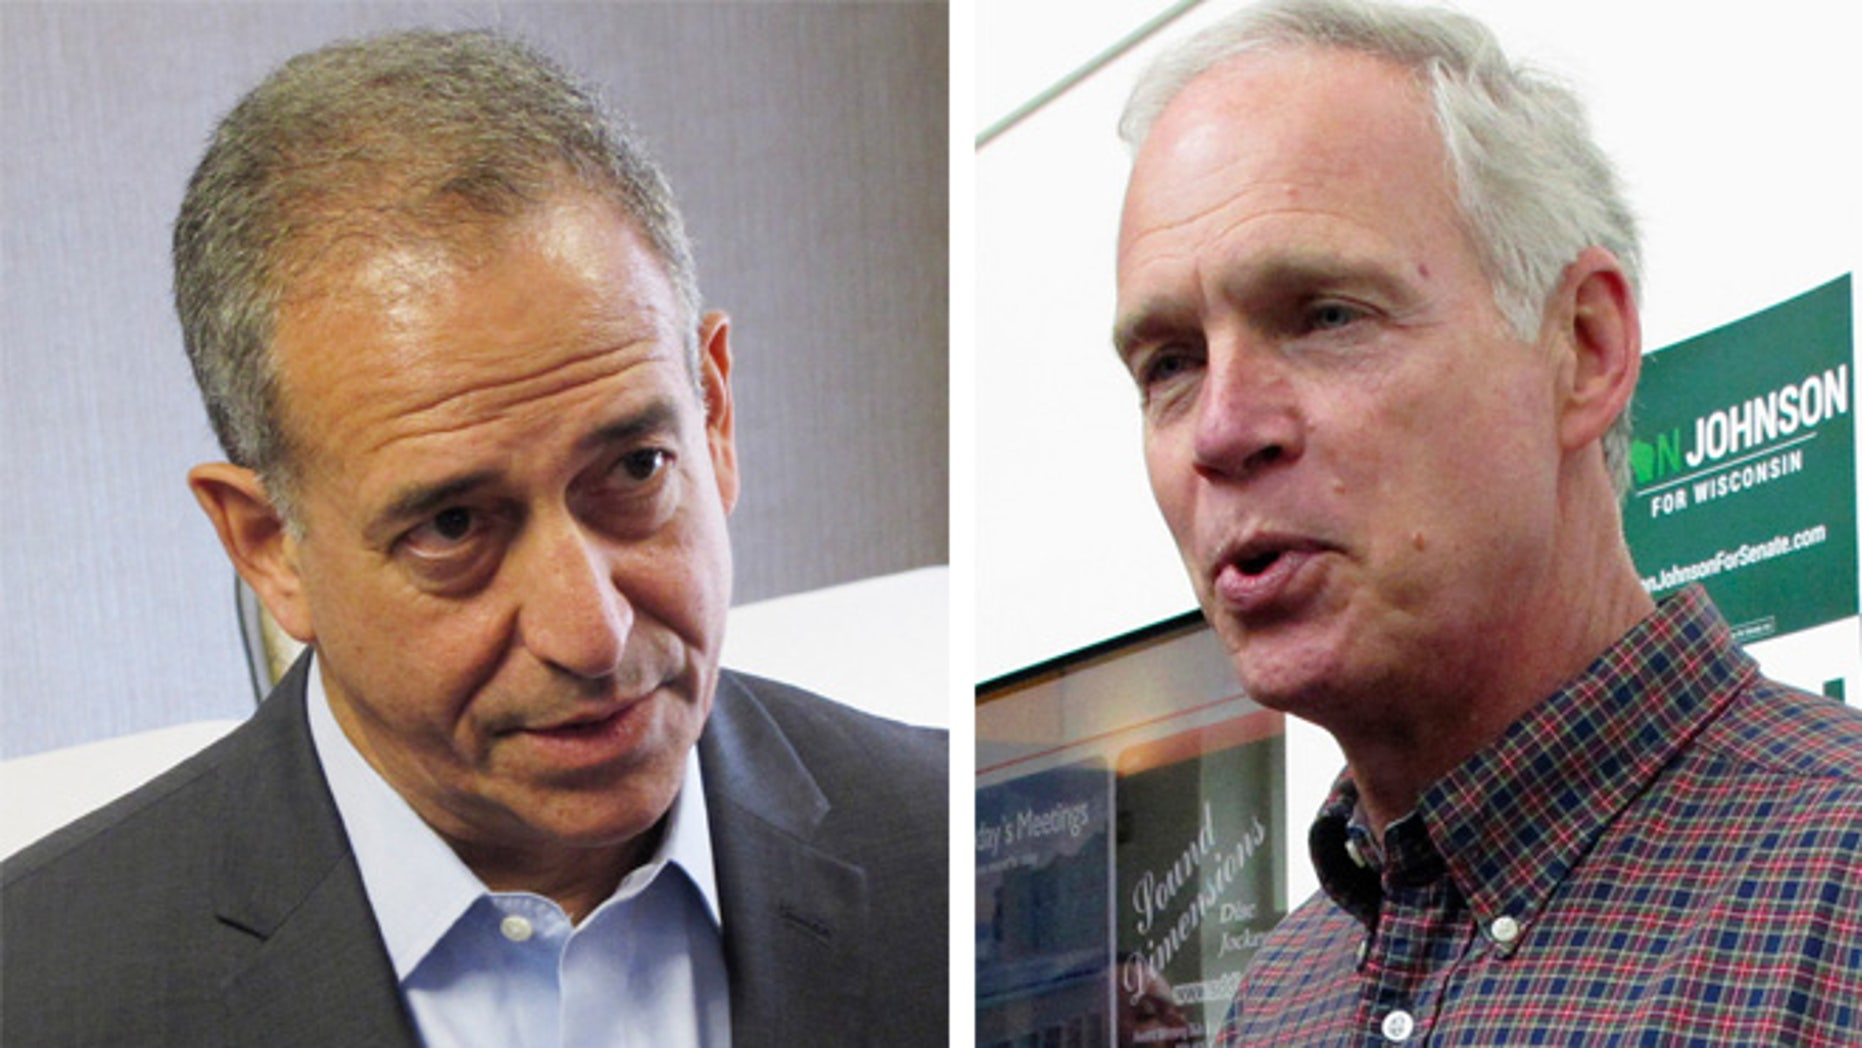 Democratic Senate candidate Russ Feingold (left) and U.S. Sen. Ron Johnson, R-Wis. (right) class over immigration policy. (AP Photos)